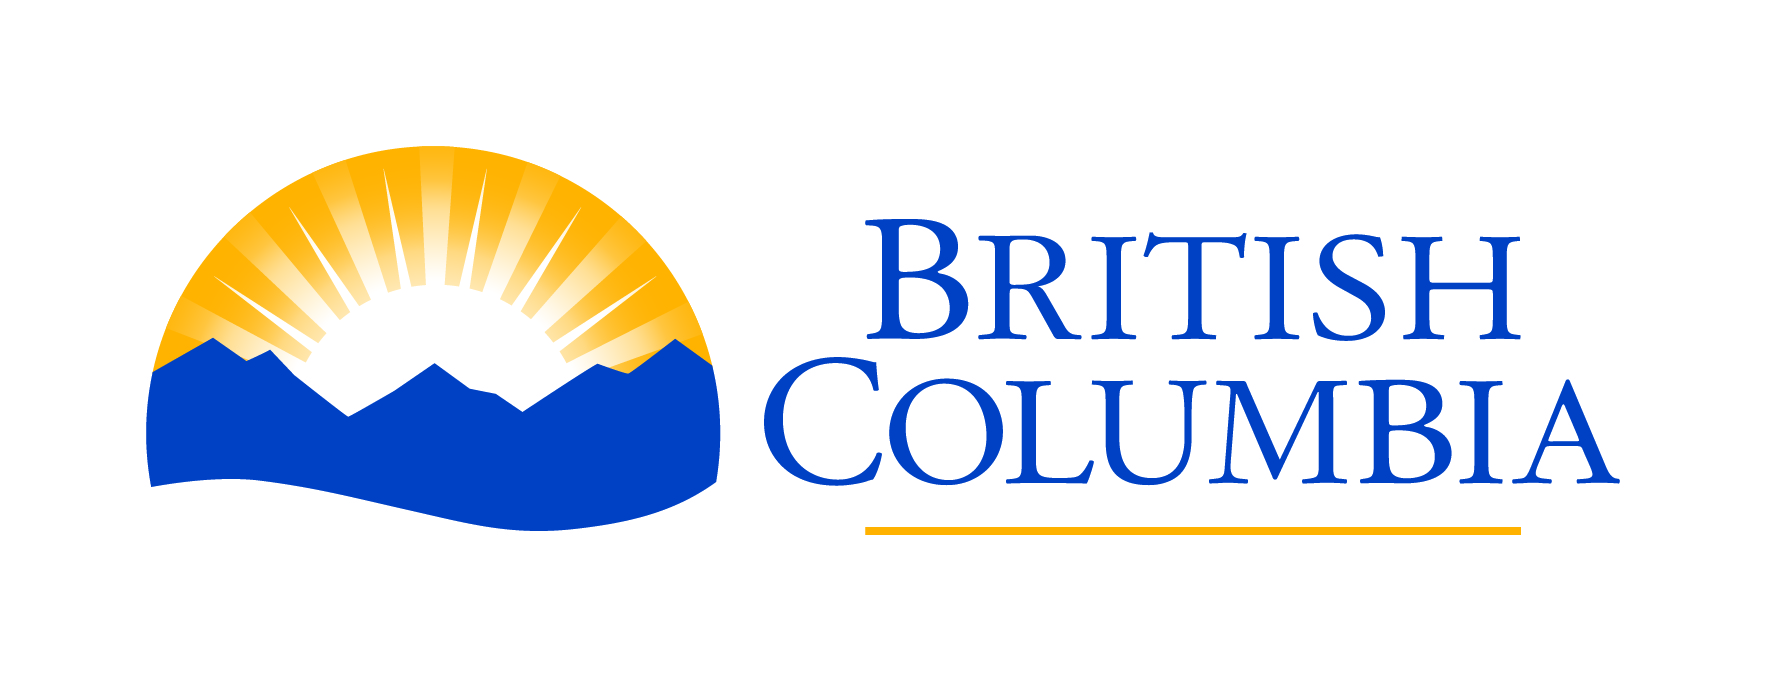 Image result for logo images for british columbia